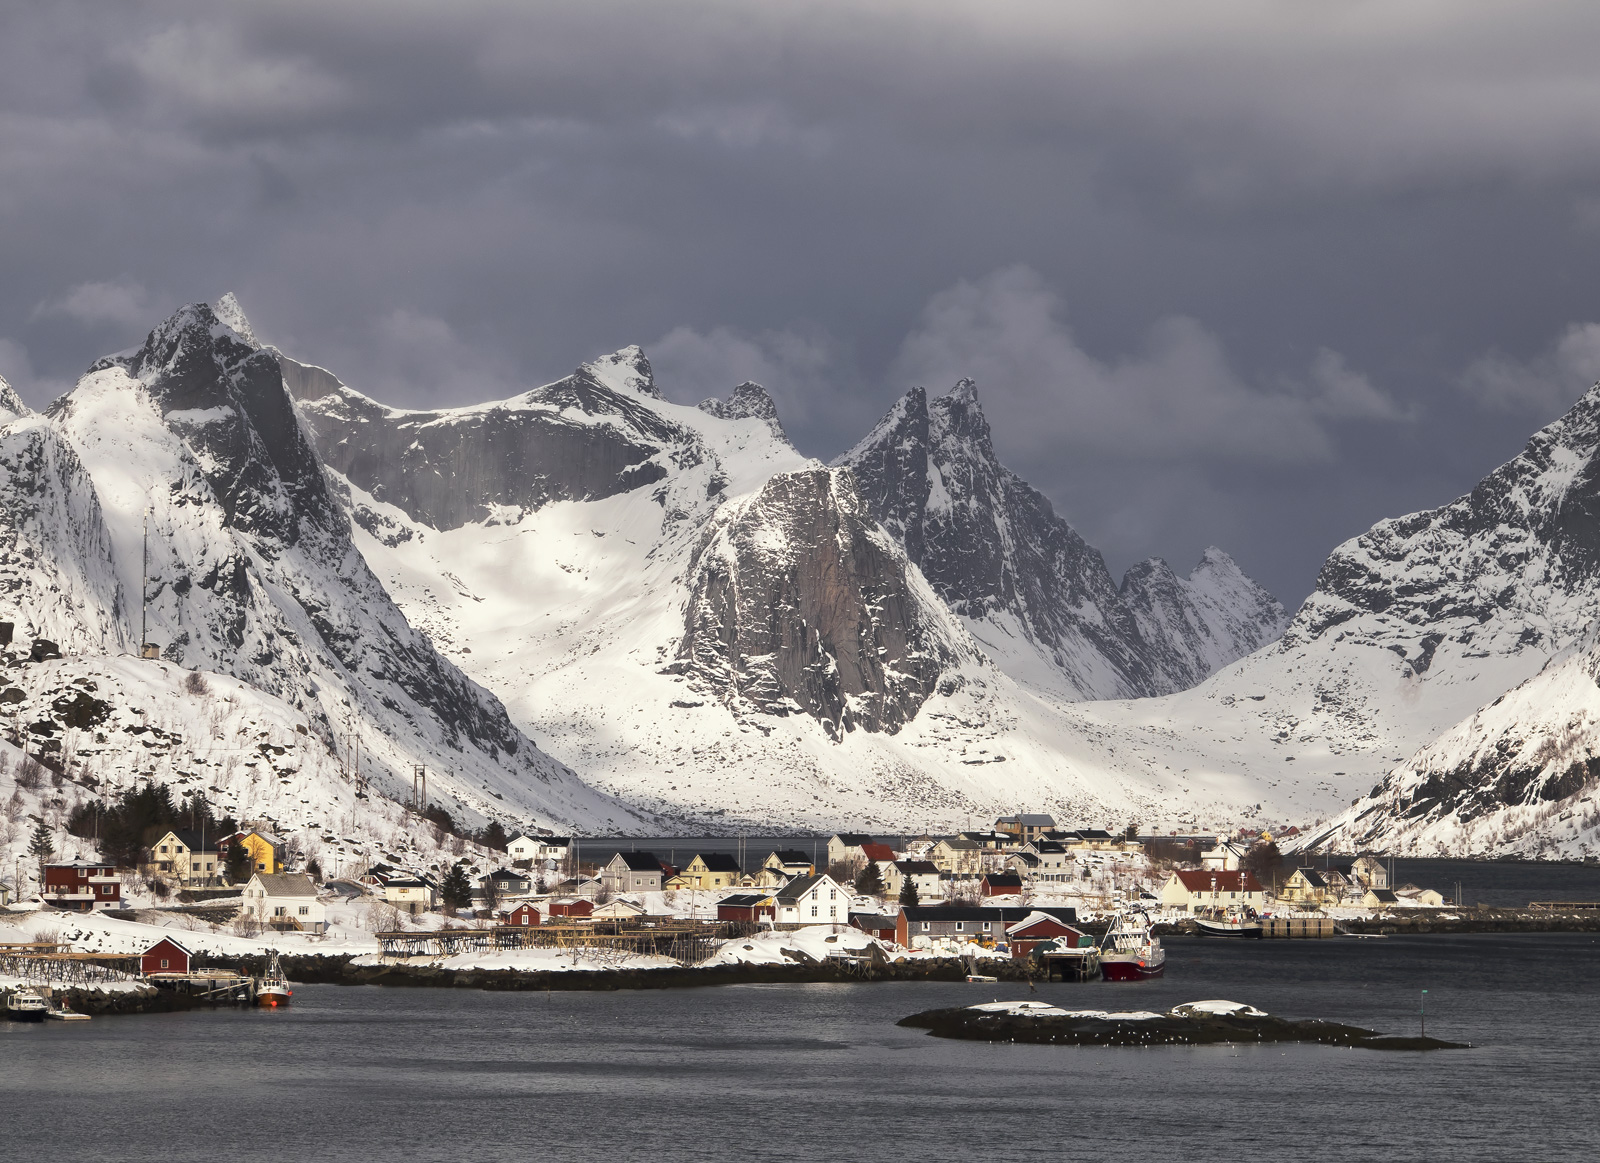 Storm Brewing Reine, Reine Harbour, Lofoten, Norway, storm, blizzard, awesome, white, teeth, idyllic, harbour, mountains, photo